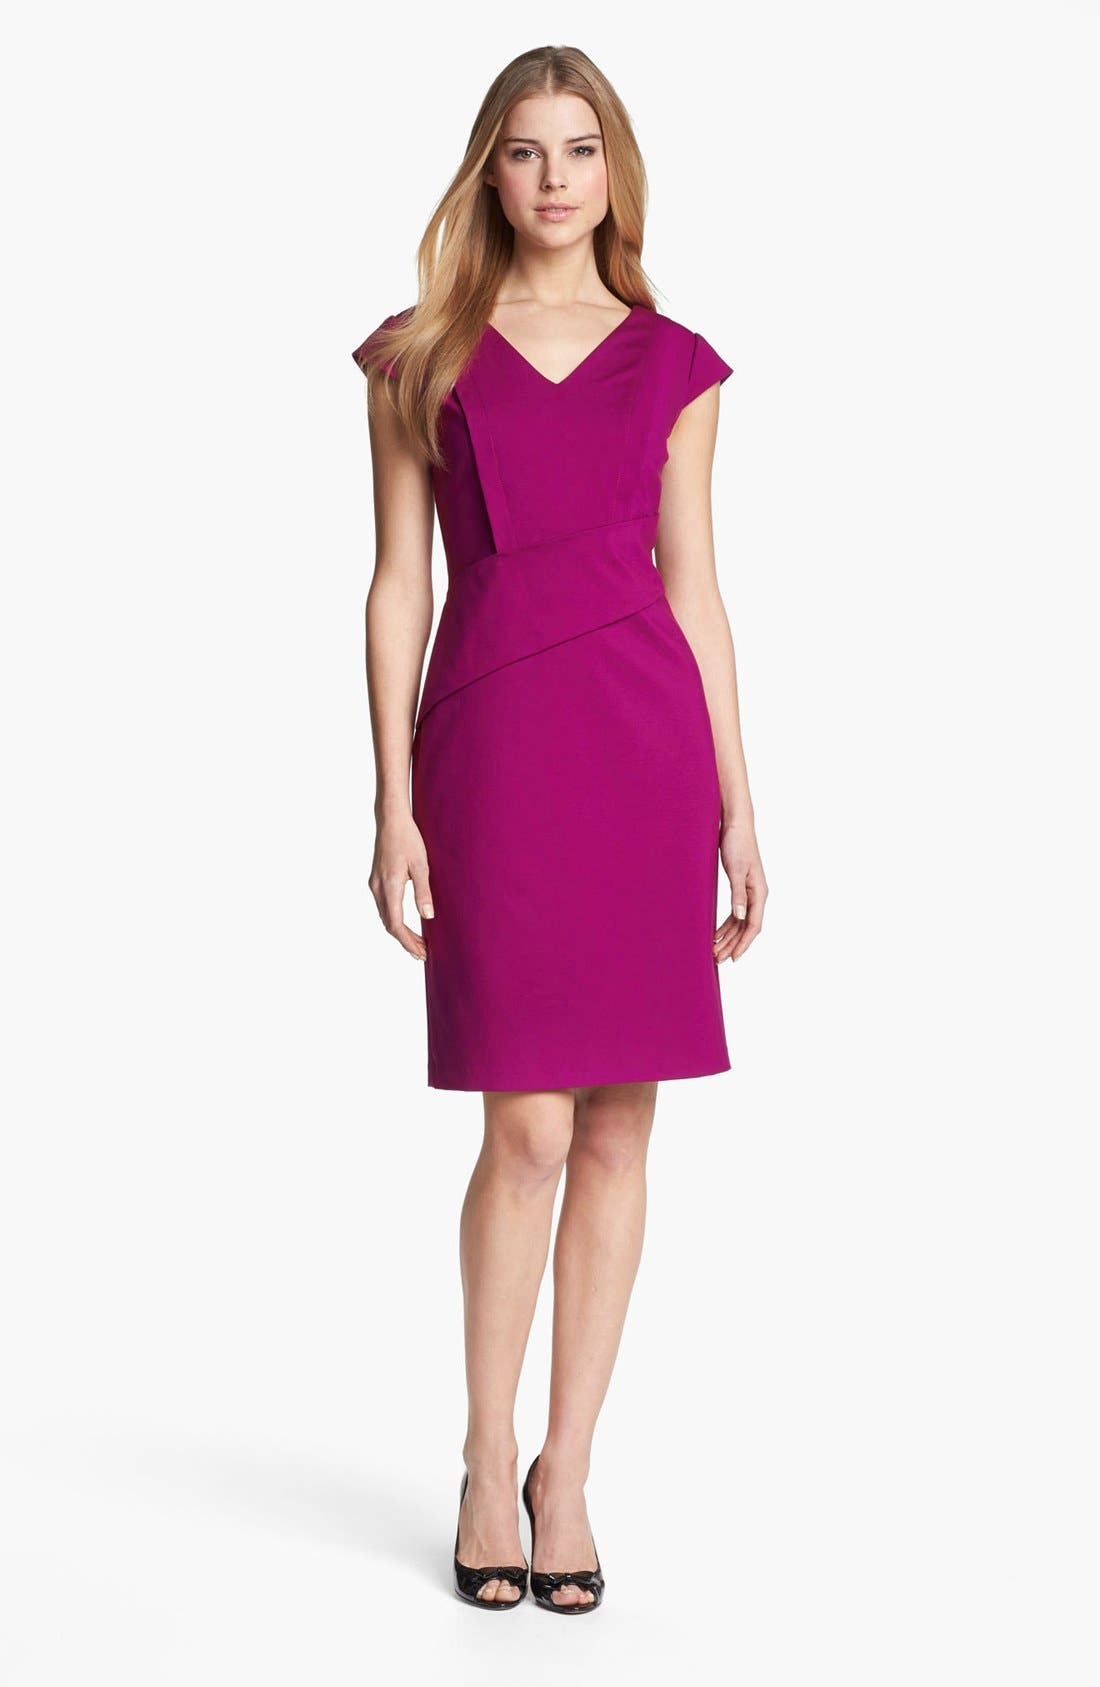 Alternate Image 1 Selected - Adrianna Papell Cap Sleeve Sheath Dress (Online Only)